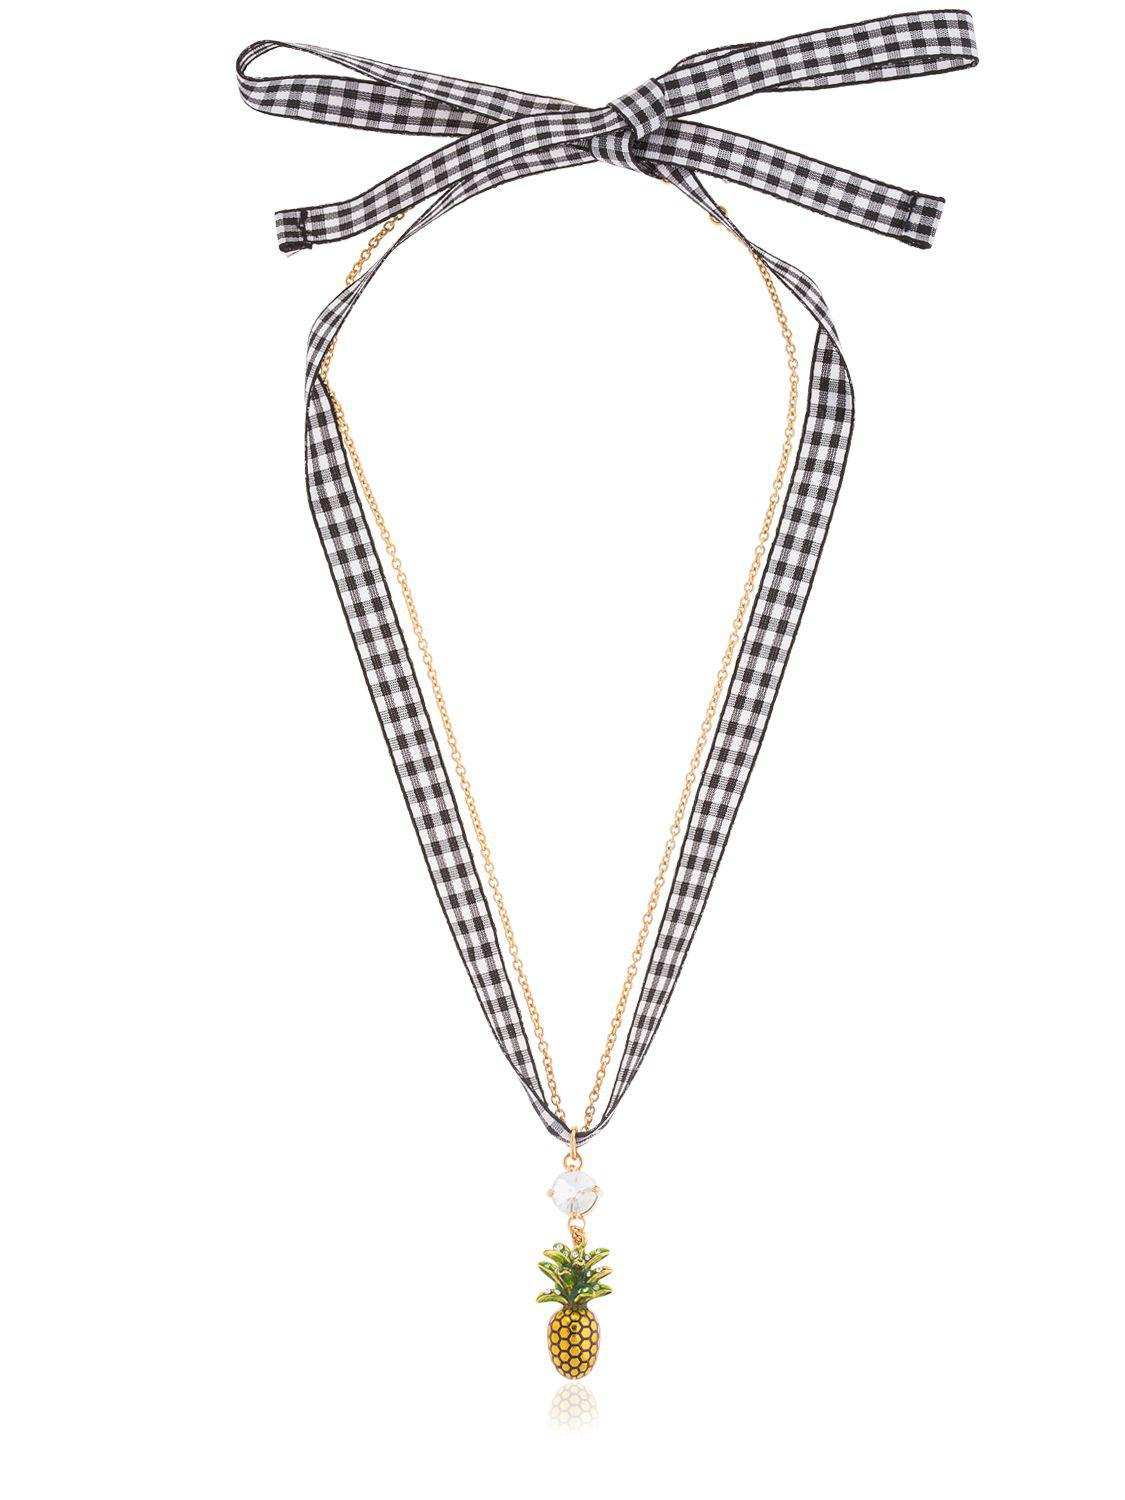 Pineapple necklace Miu Miu Buy Cheap Pay With Paypal Sk93hhK7i2